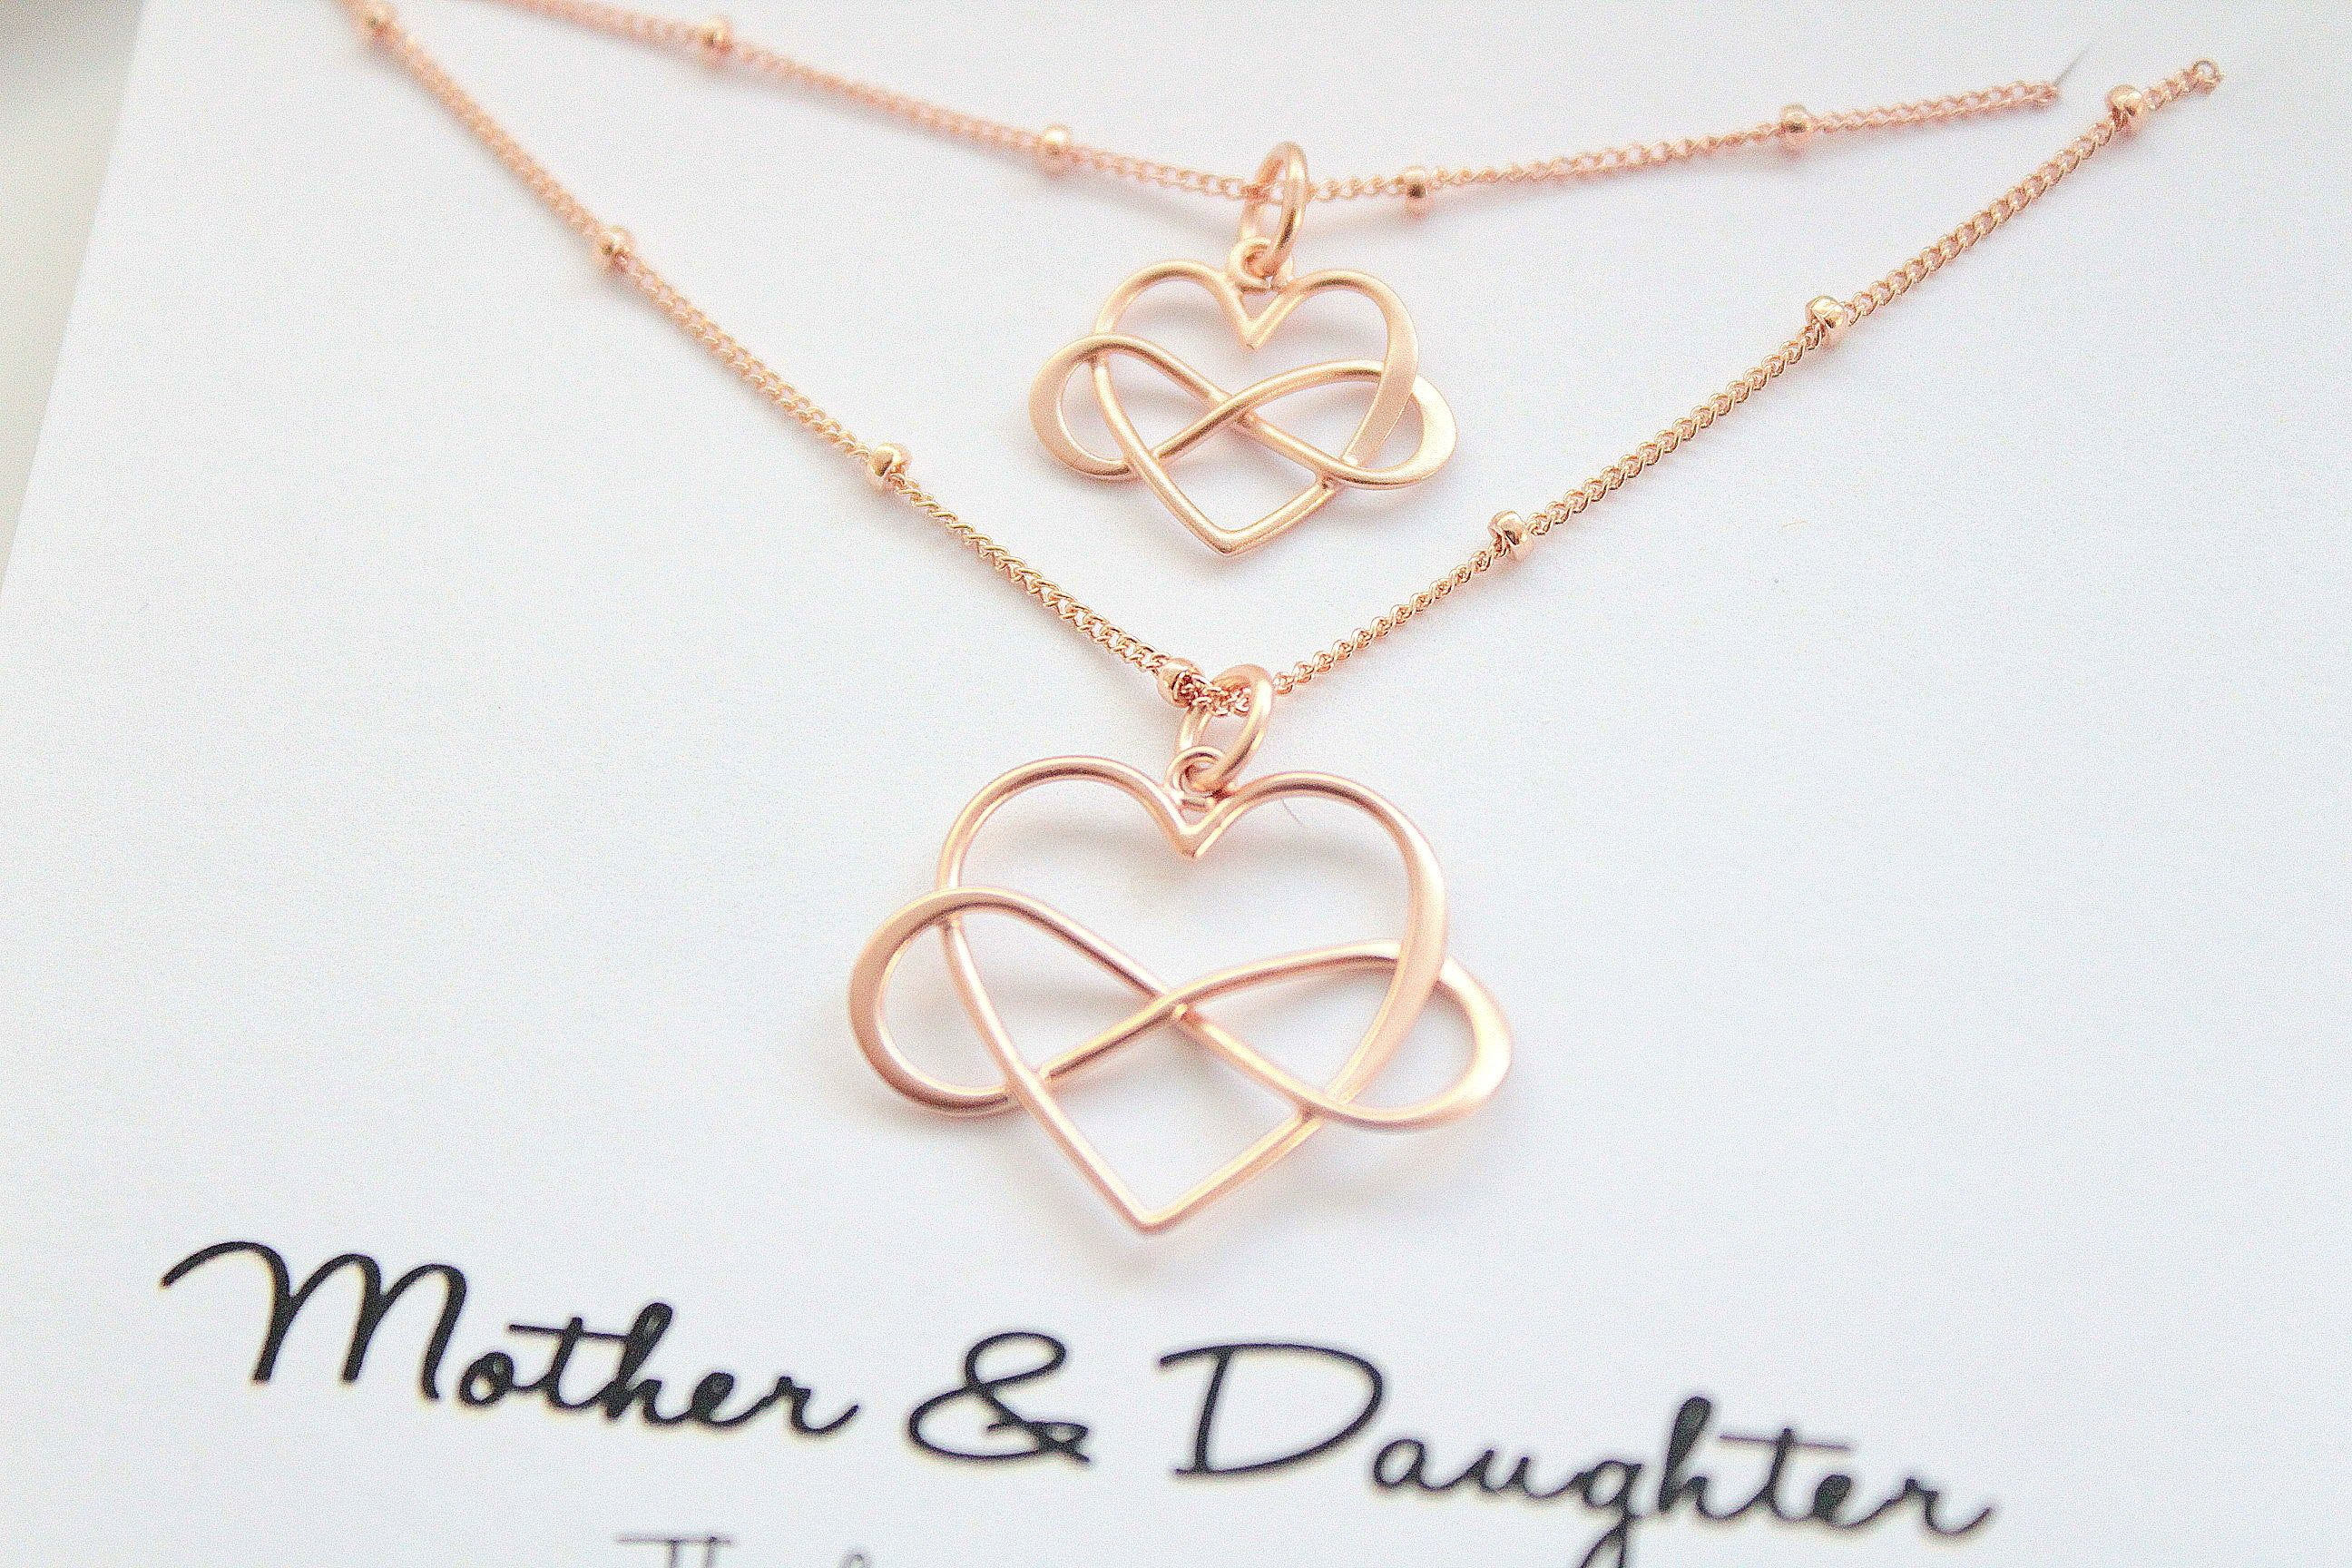 Mother Daughter necklace rose gold Mother daughter gift | Etsy